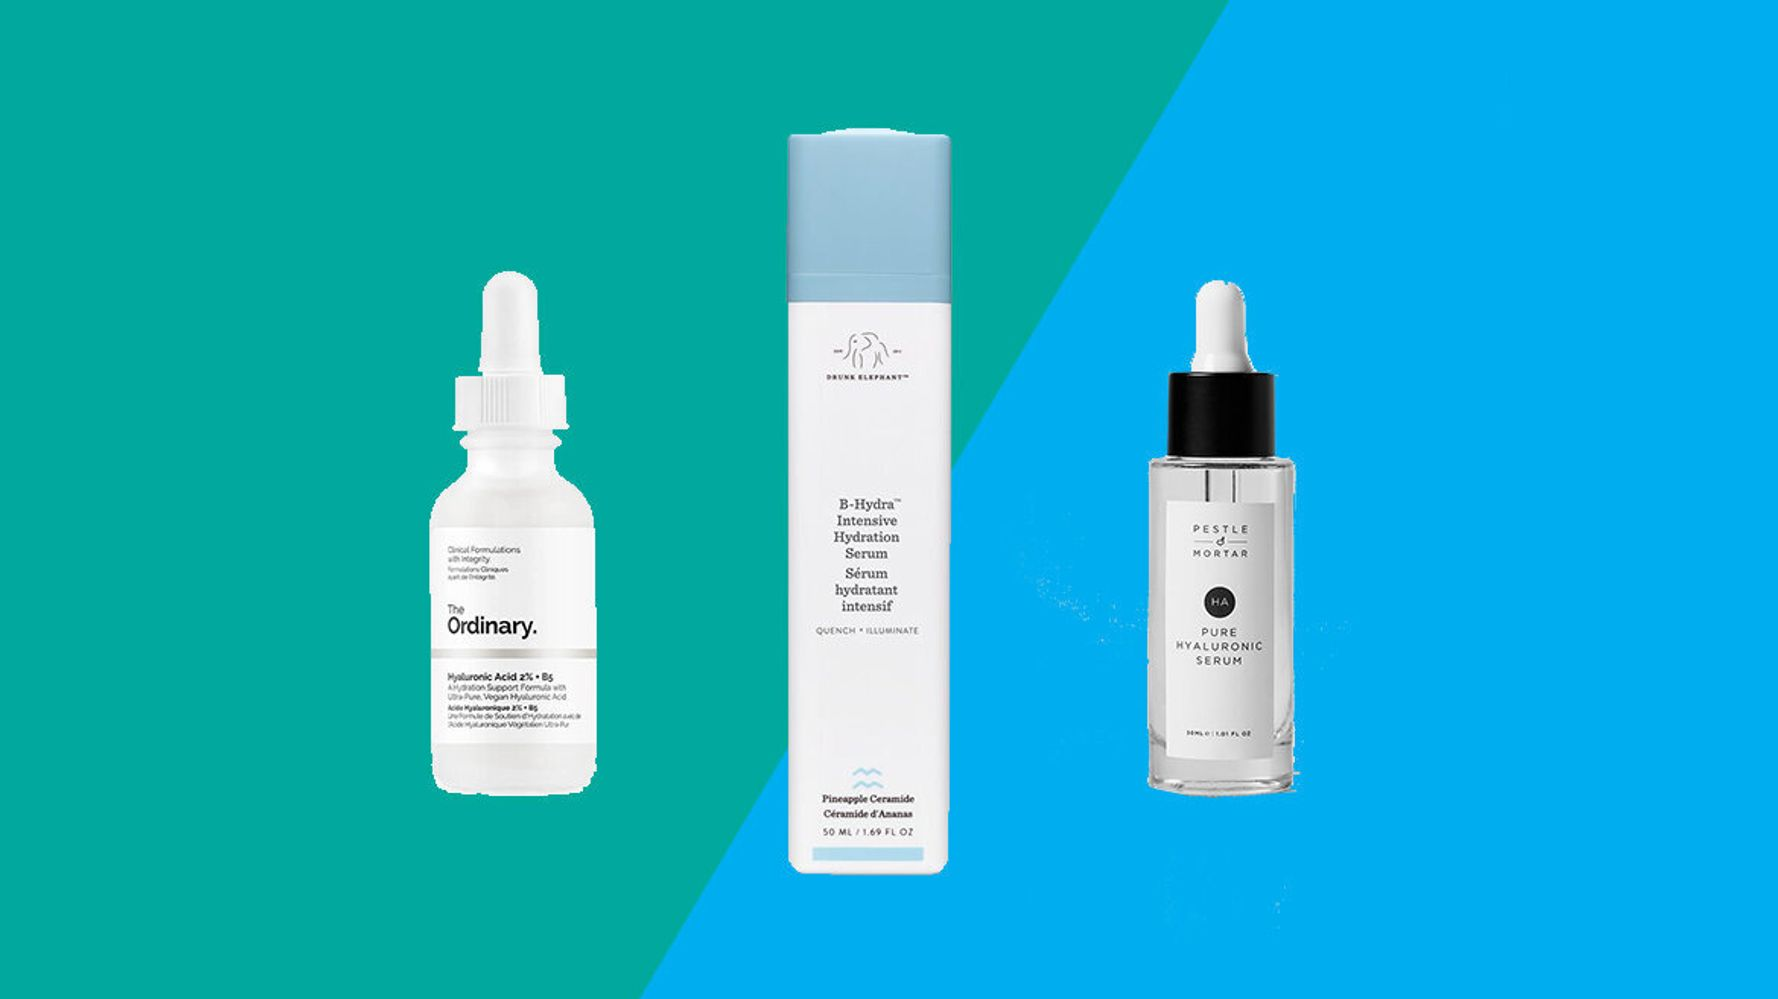 Can The Much-Hyped Hyaluronic Acid Help My Oily/Combination Skin? I Put Three Products To The Test